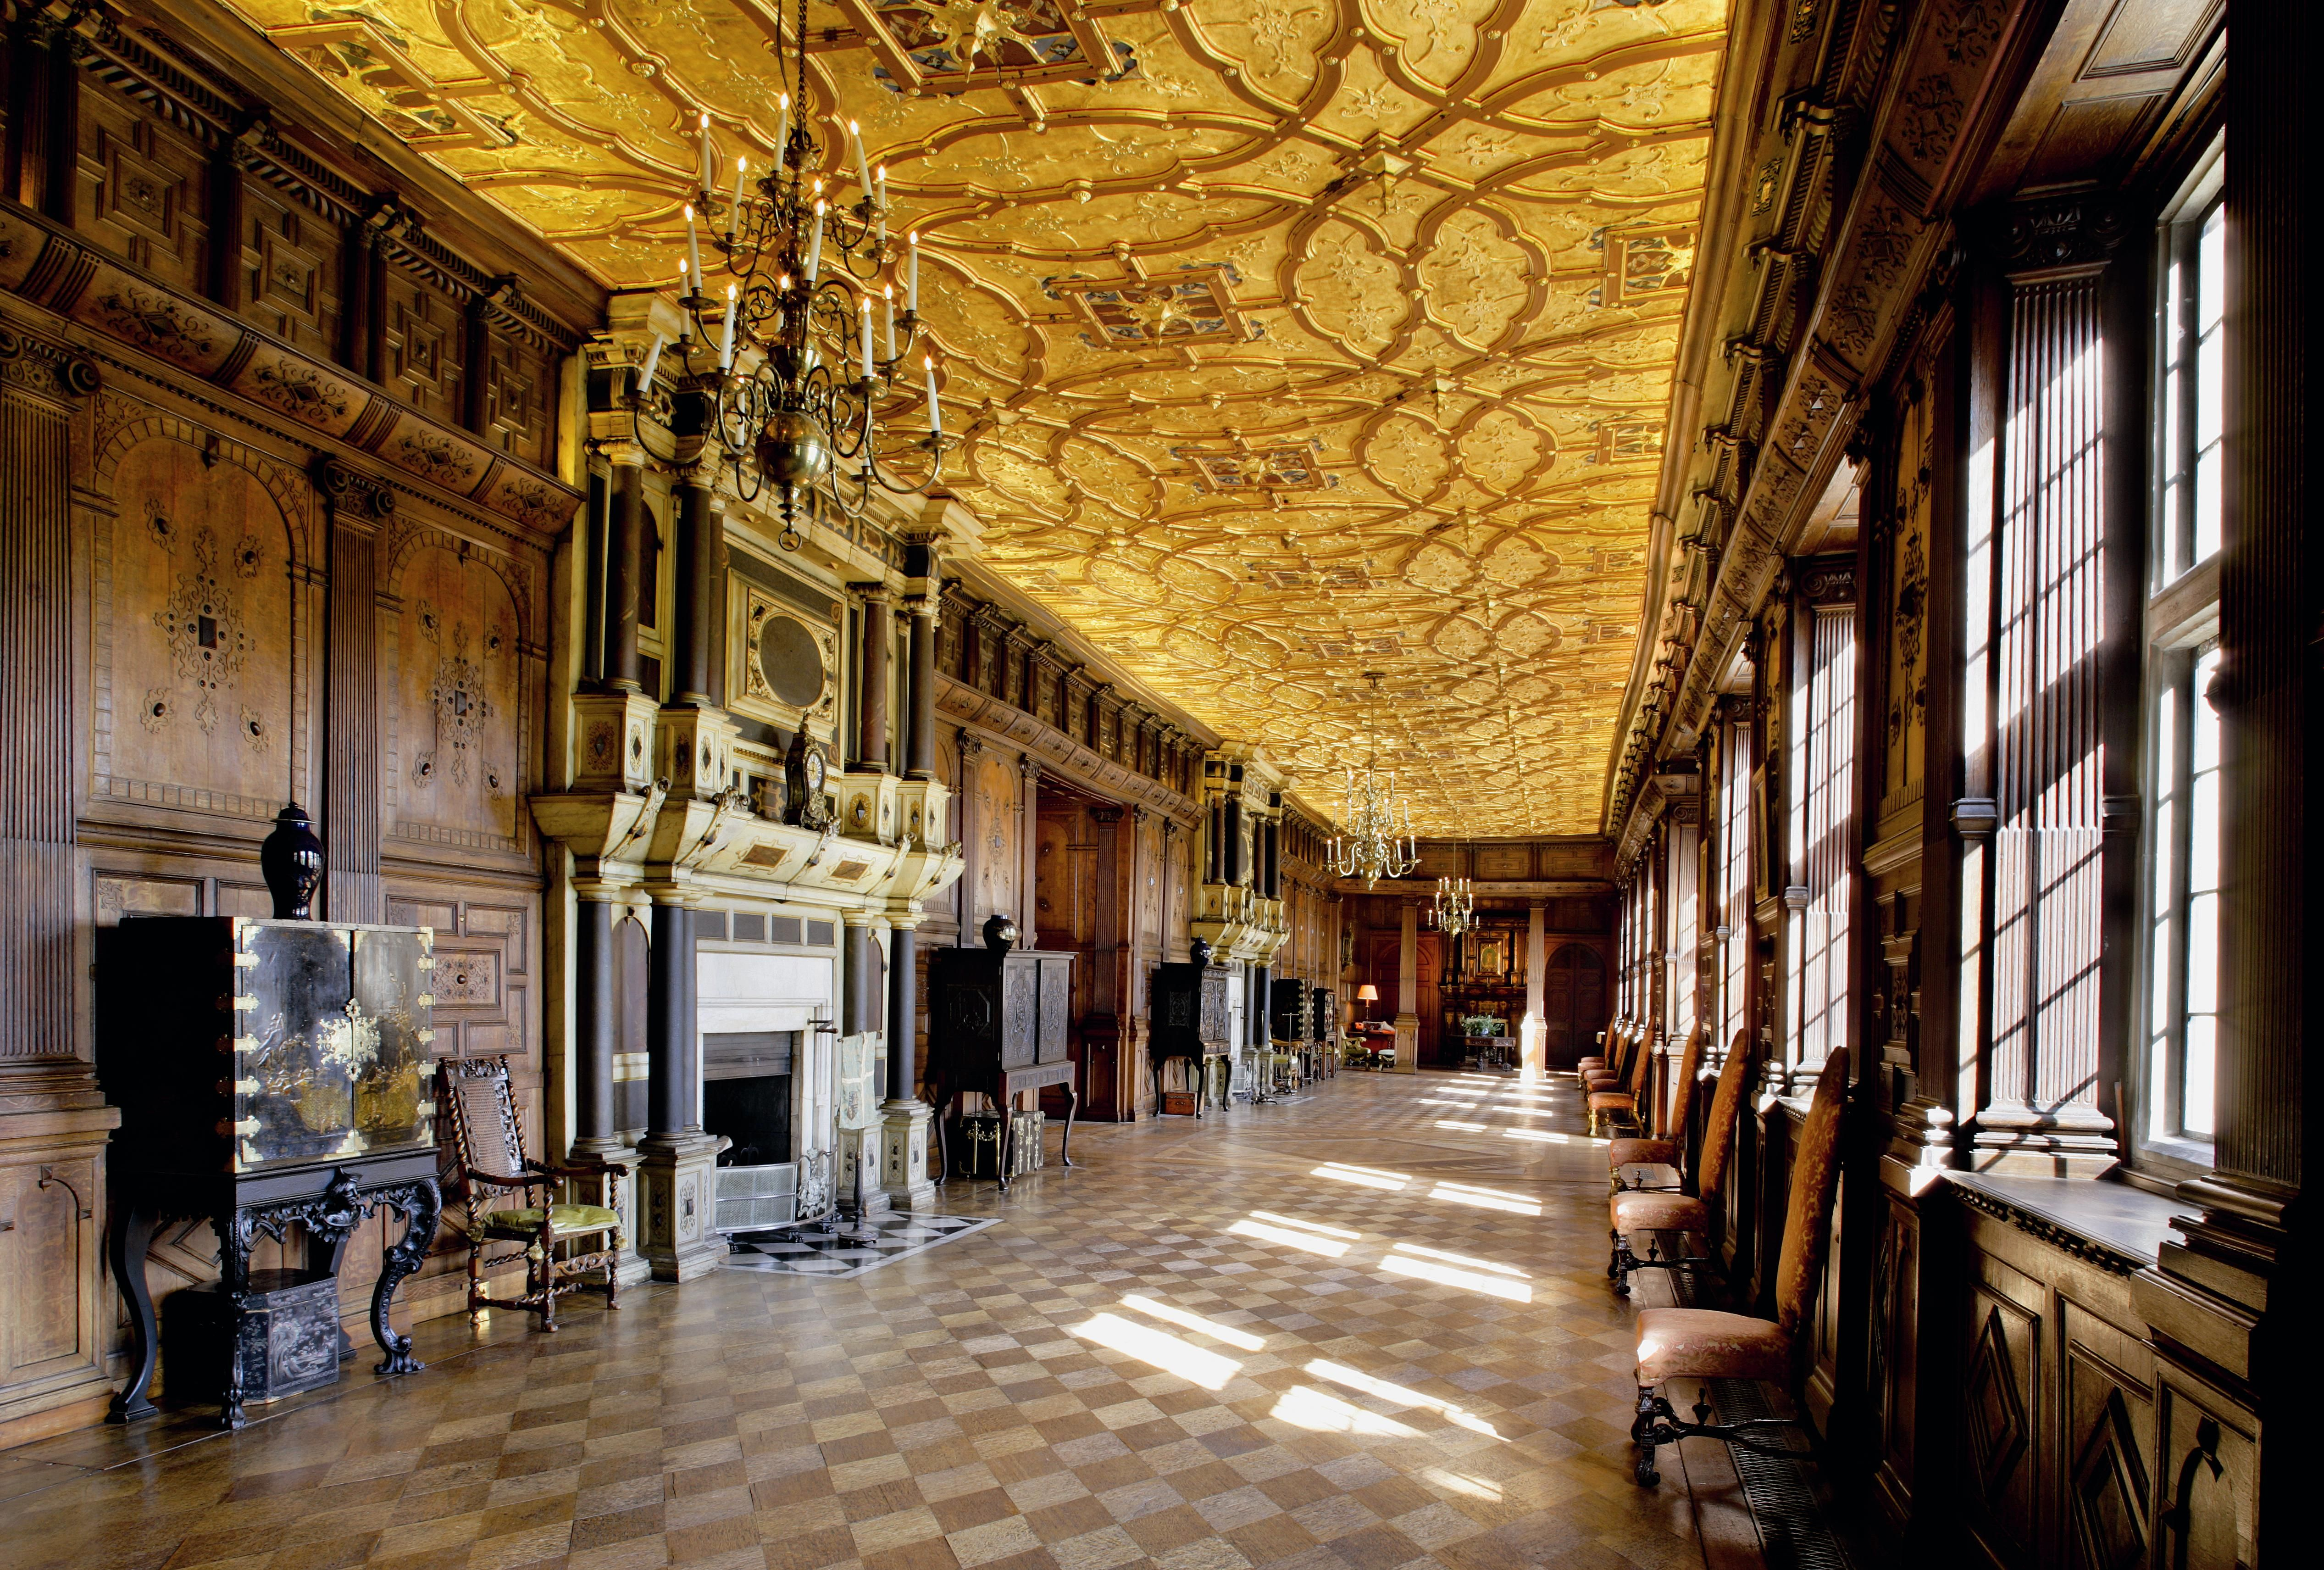 Stately Home Interior | History And Glamour At Hatfield House All Things British